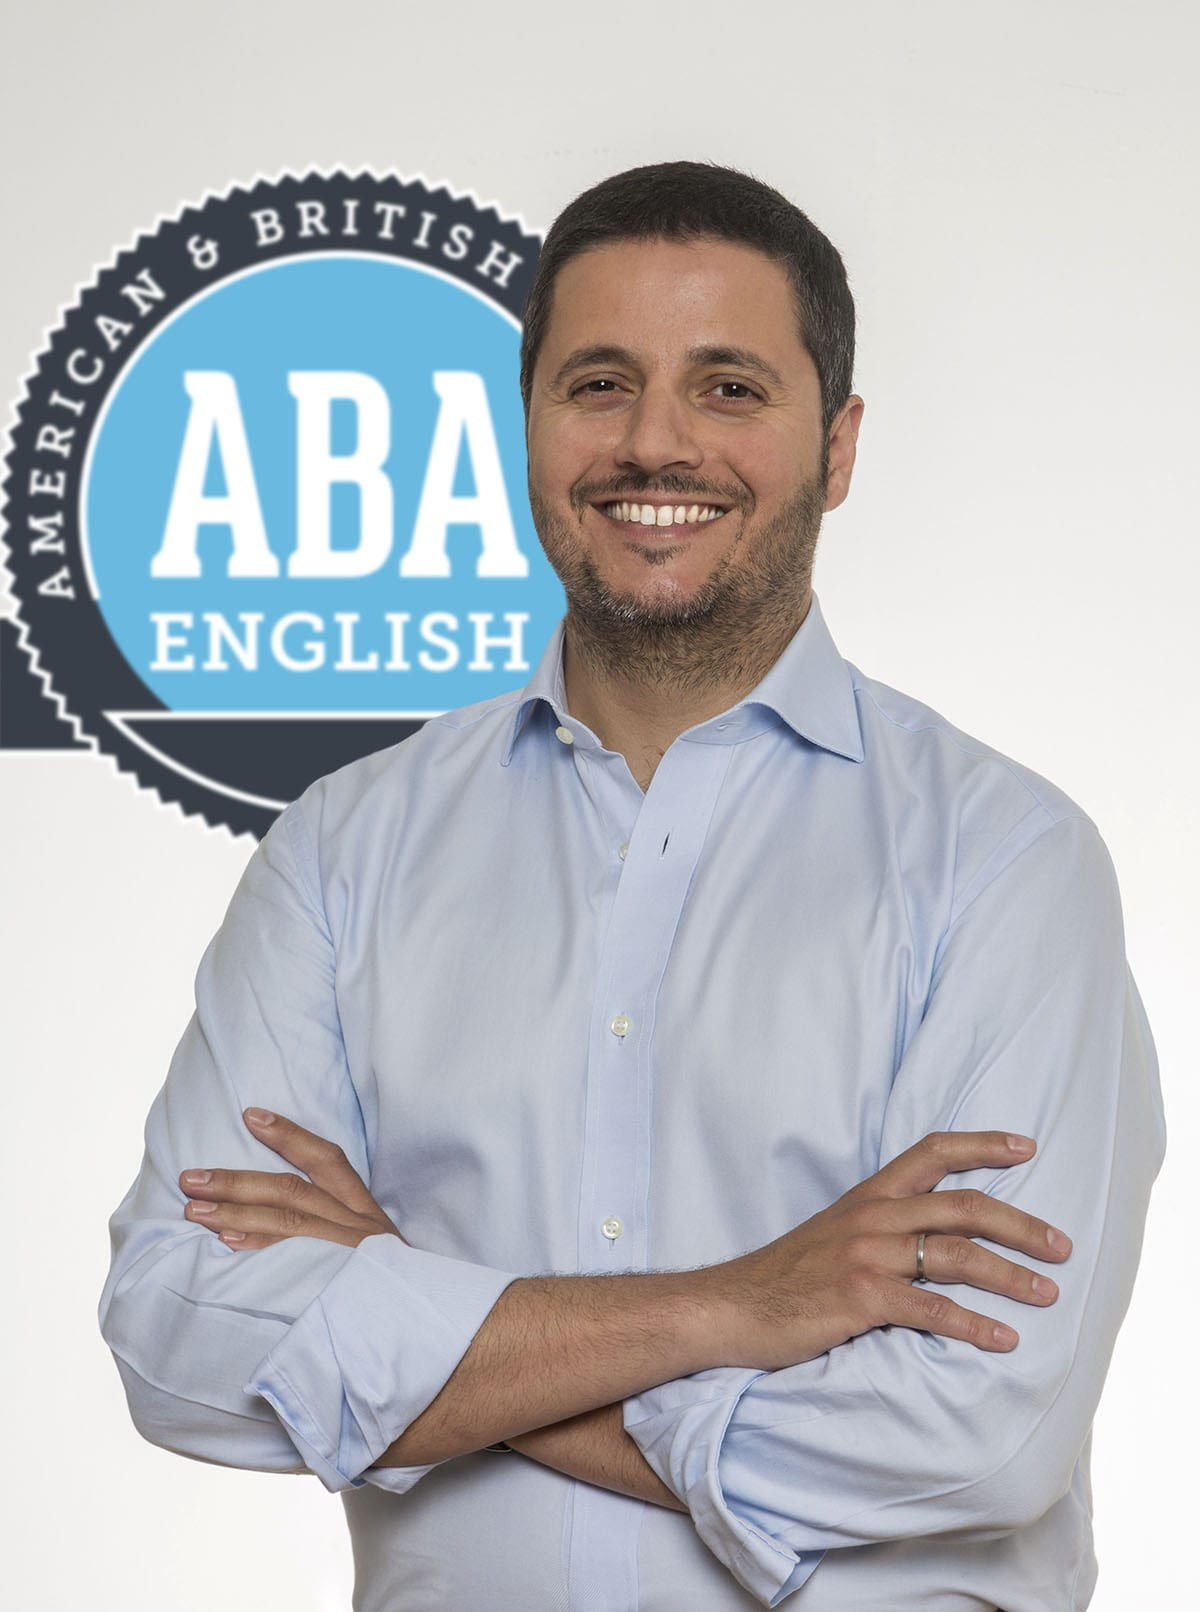 ABA English appoints Gino Micacchi CPTO, a new user-centric executive role